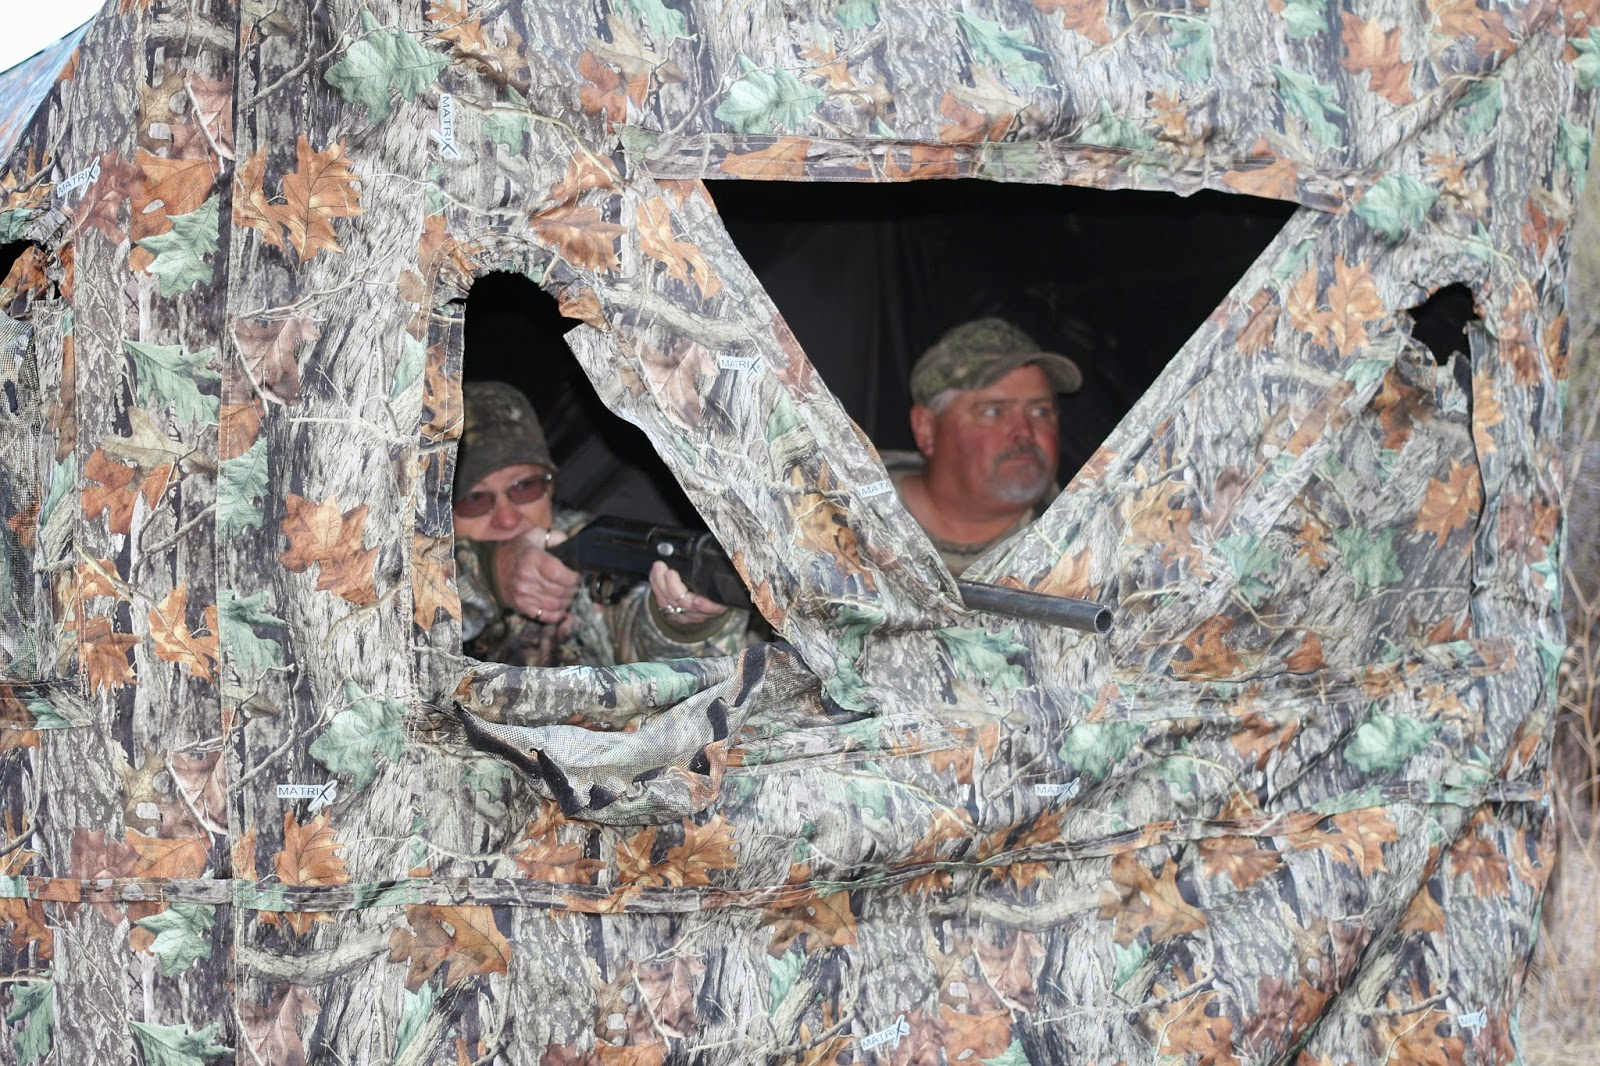 Hunting+Gould's+Turkeys+in+Mexico+with+Colburn+and+Scott+Outfitters+and+Jay+Scott.++Peggie+and+TJ+Joiner+17.JPG